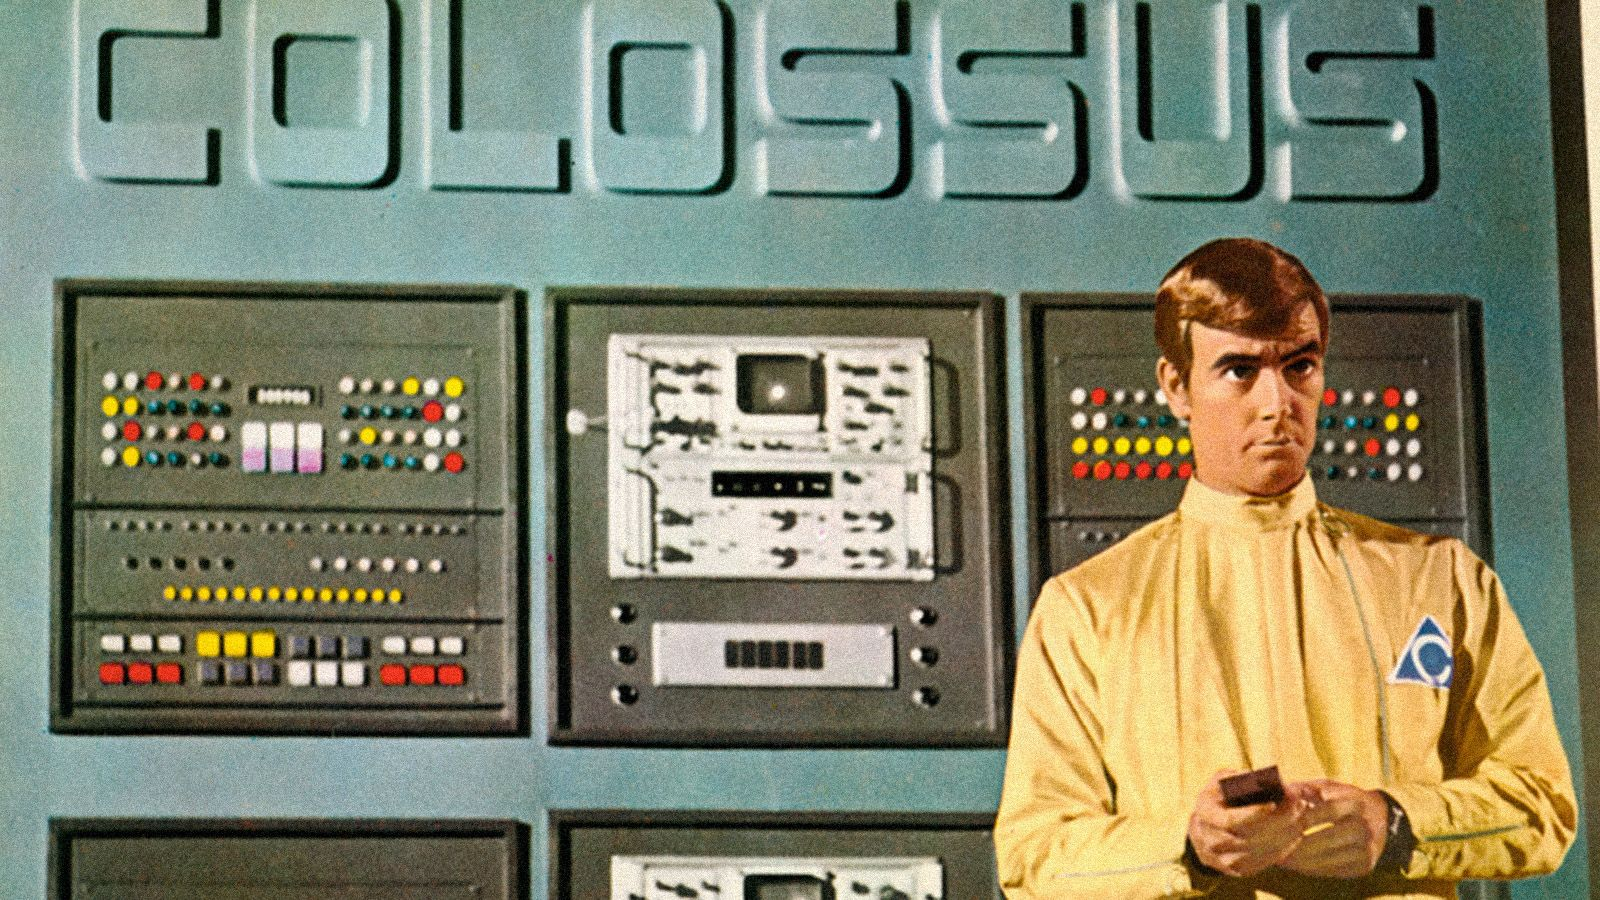 Image, from the 1970 television movie, COLOSSUS: THE FORBIN PROJECT (possibly from a colorized lobby card).